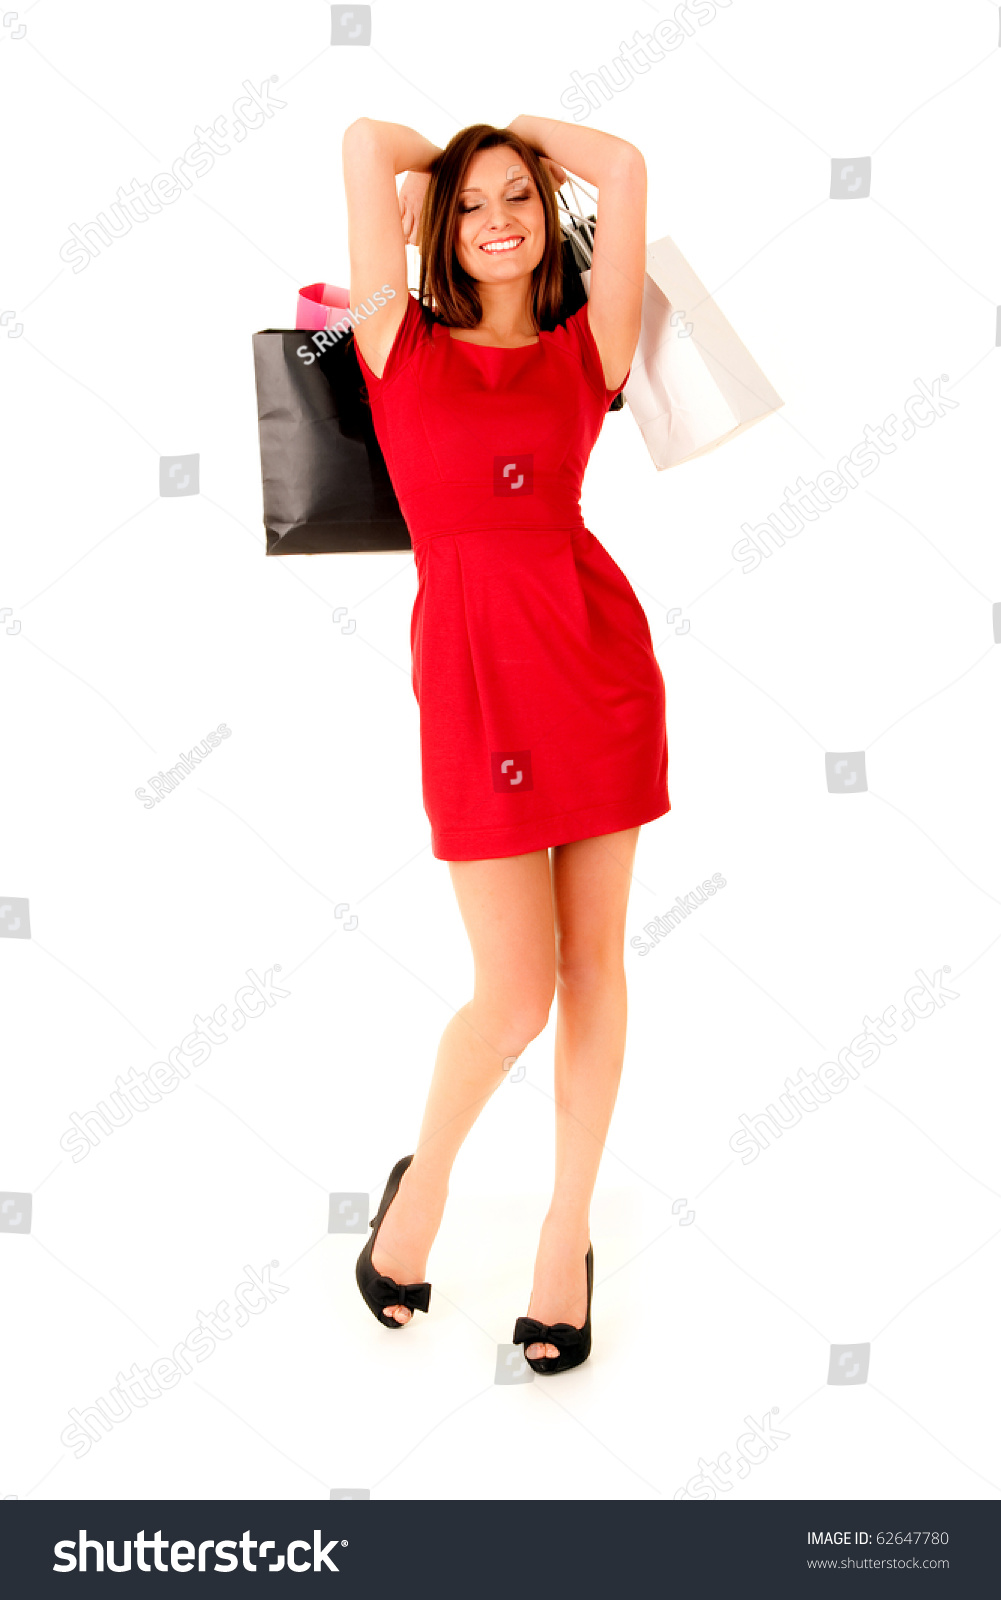 Happy Girl Red Dress Wearing Black Stock Photo 62647780 - Shutterstock